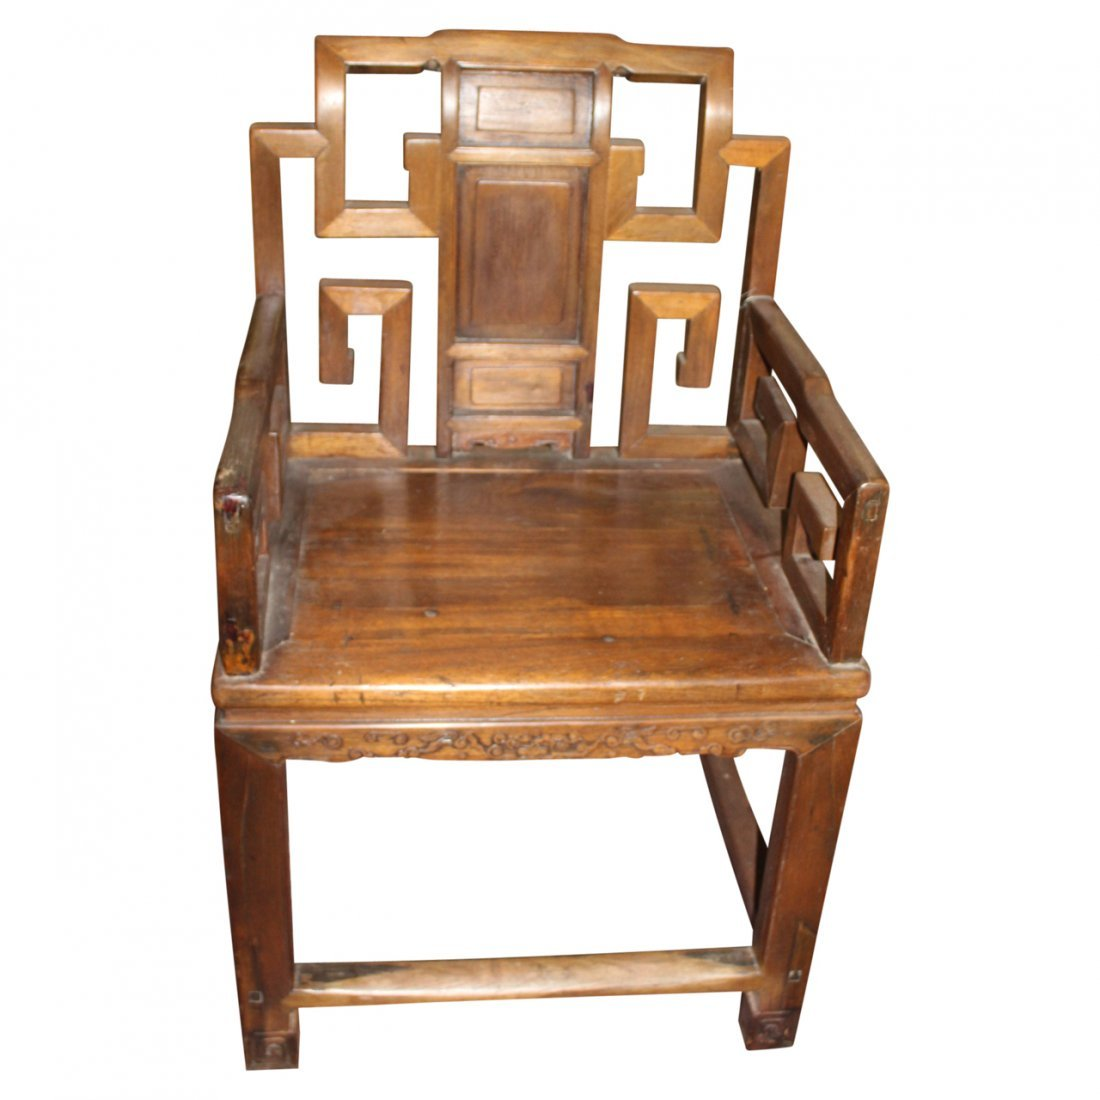 Antique Chinese Arm Chair - 2